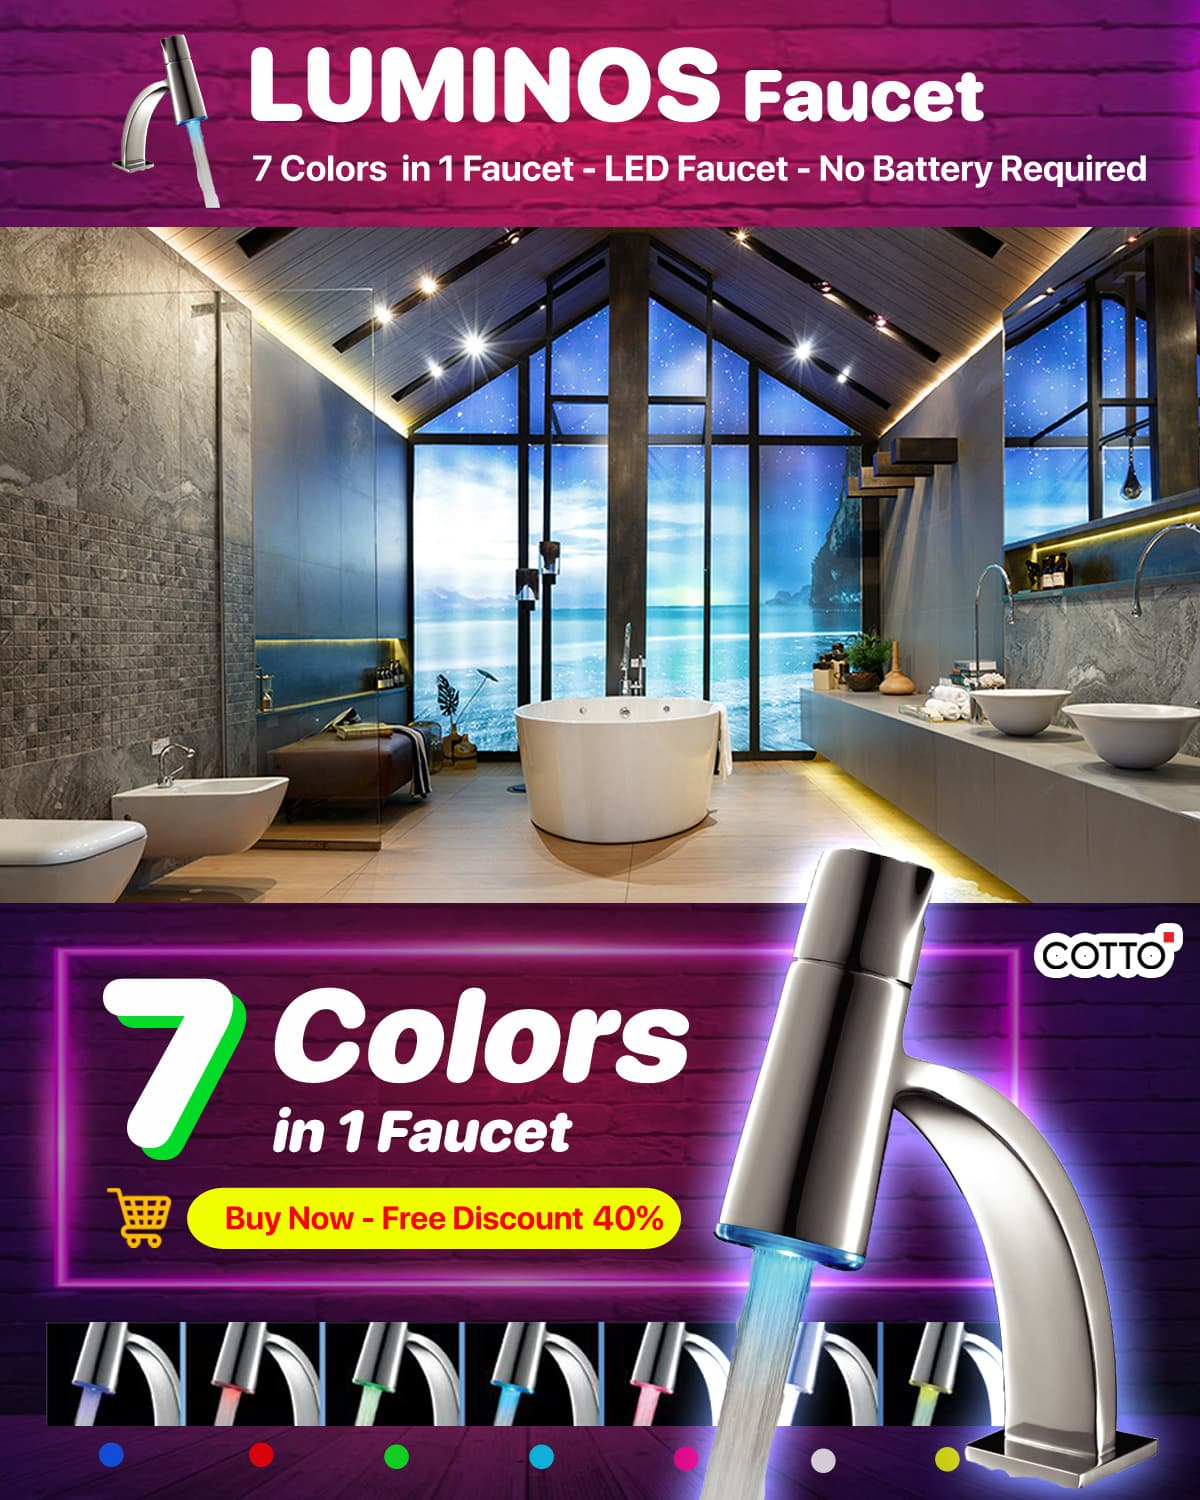 Cotto Faucet Luminos Series CT1139A new